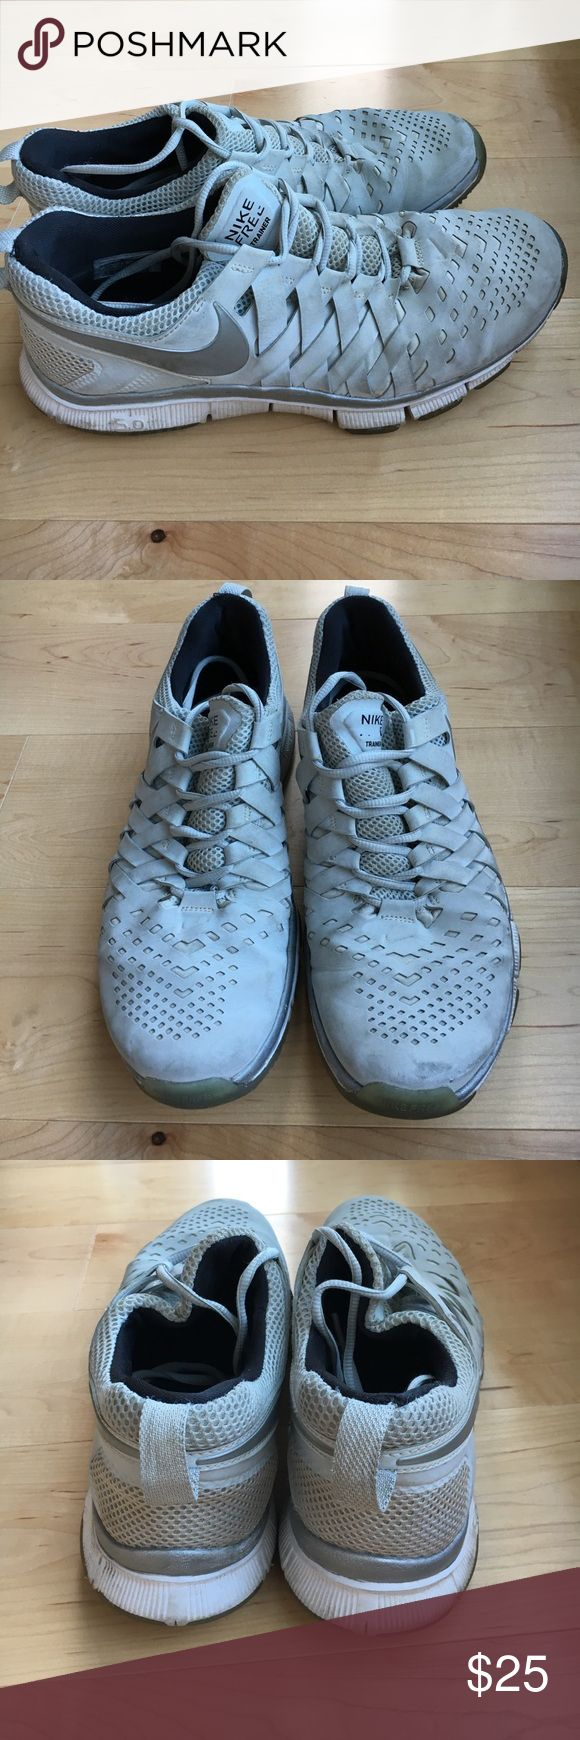 Nike Free Train 5.0 USED Used Nike free trainer 5.0. Wear and tear on the outside but performs great still and has good miles on it left. Nike Shoes Athletic Shoes